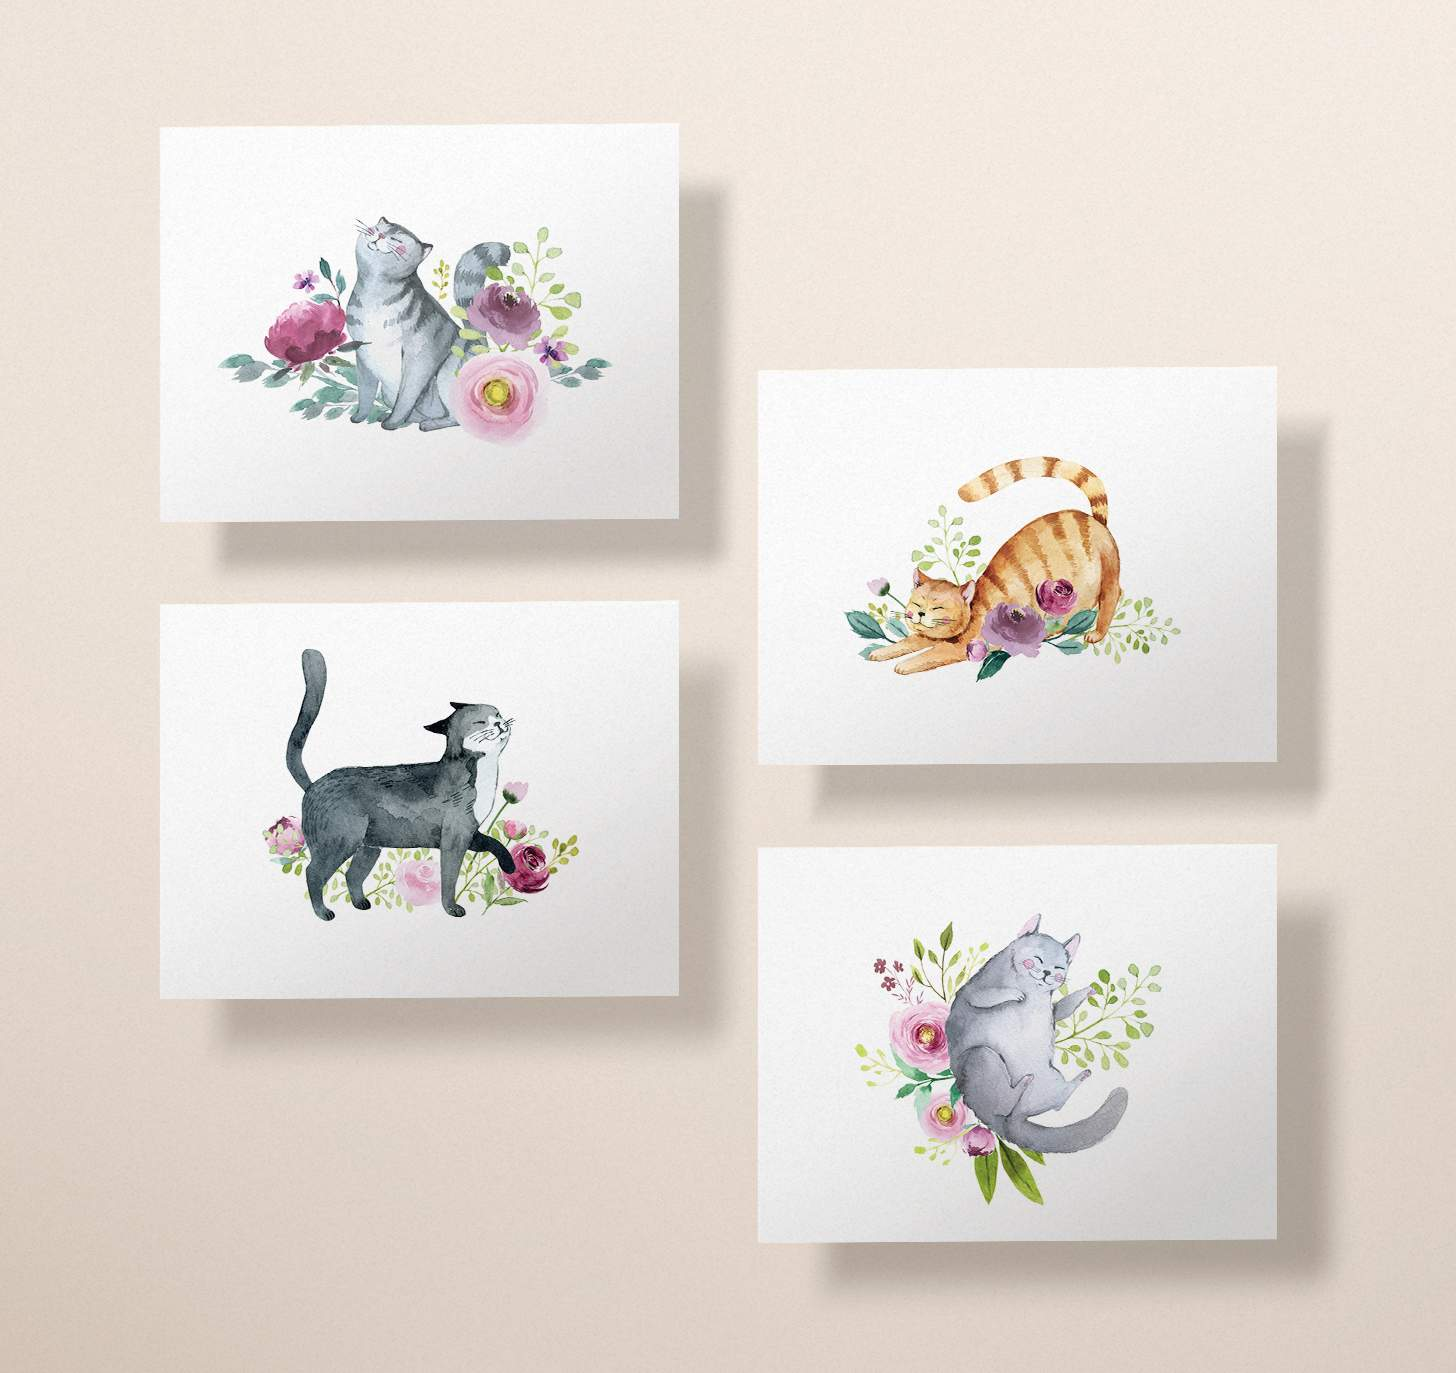 Four cards with gray, orange, black, and gray striped cat designs with flowers